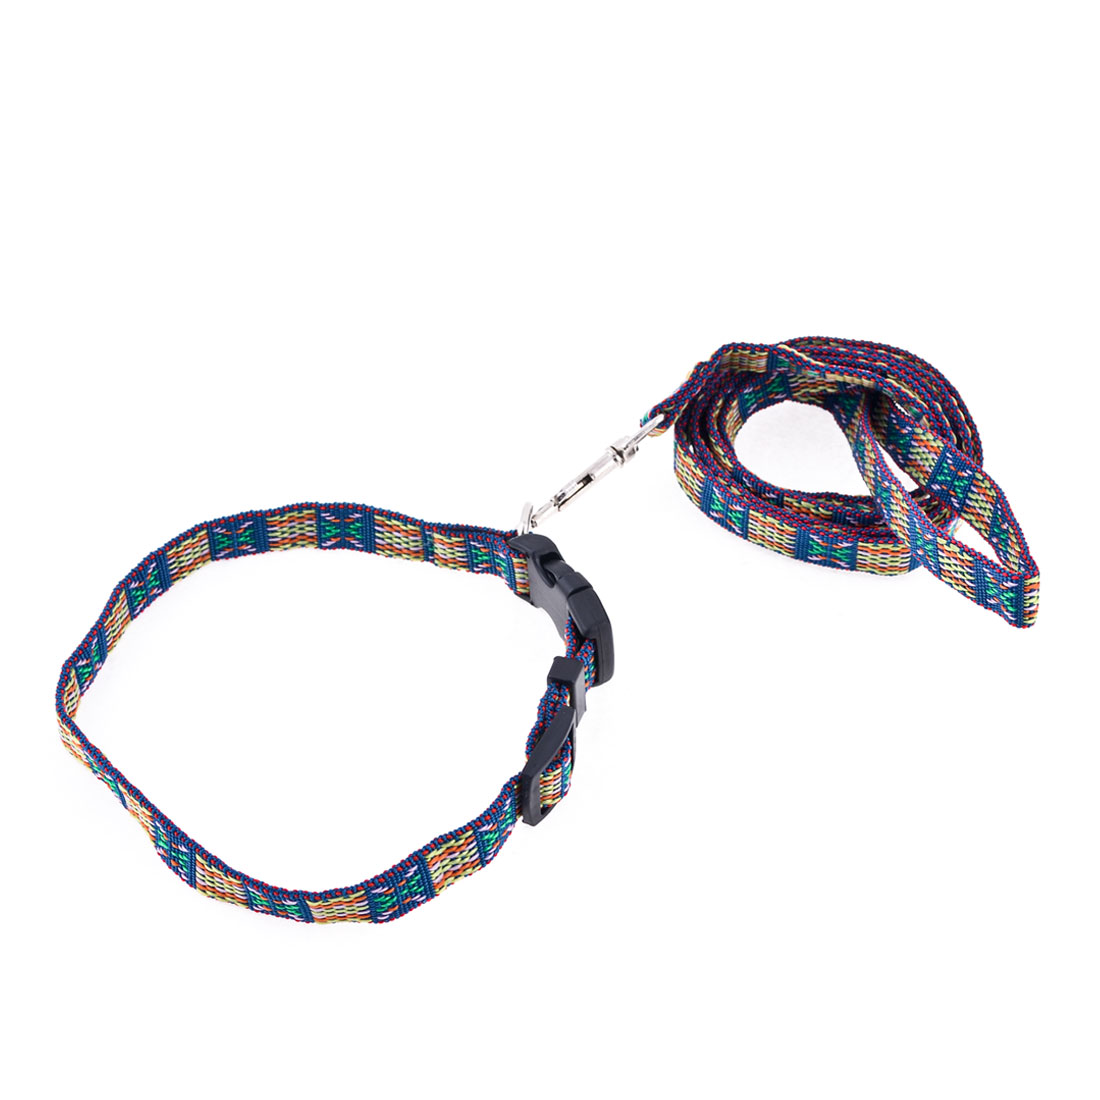 "Adjustable 0.6"" Width Strap Multicolor Dog Collar Halter Leash Lead"